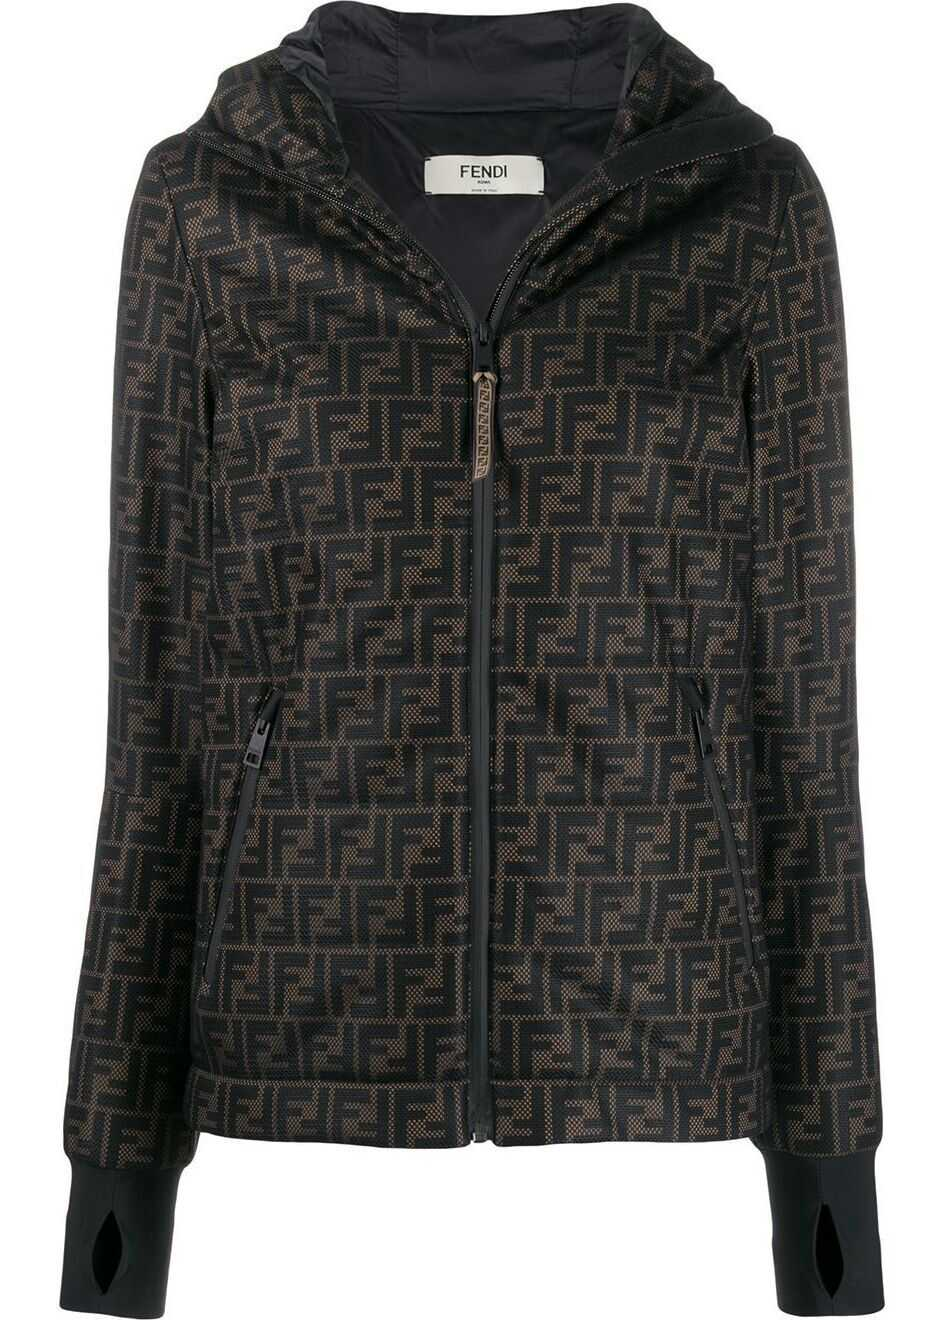 Fendi Polyester Outerwear Jacket BROWN